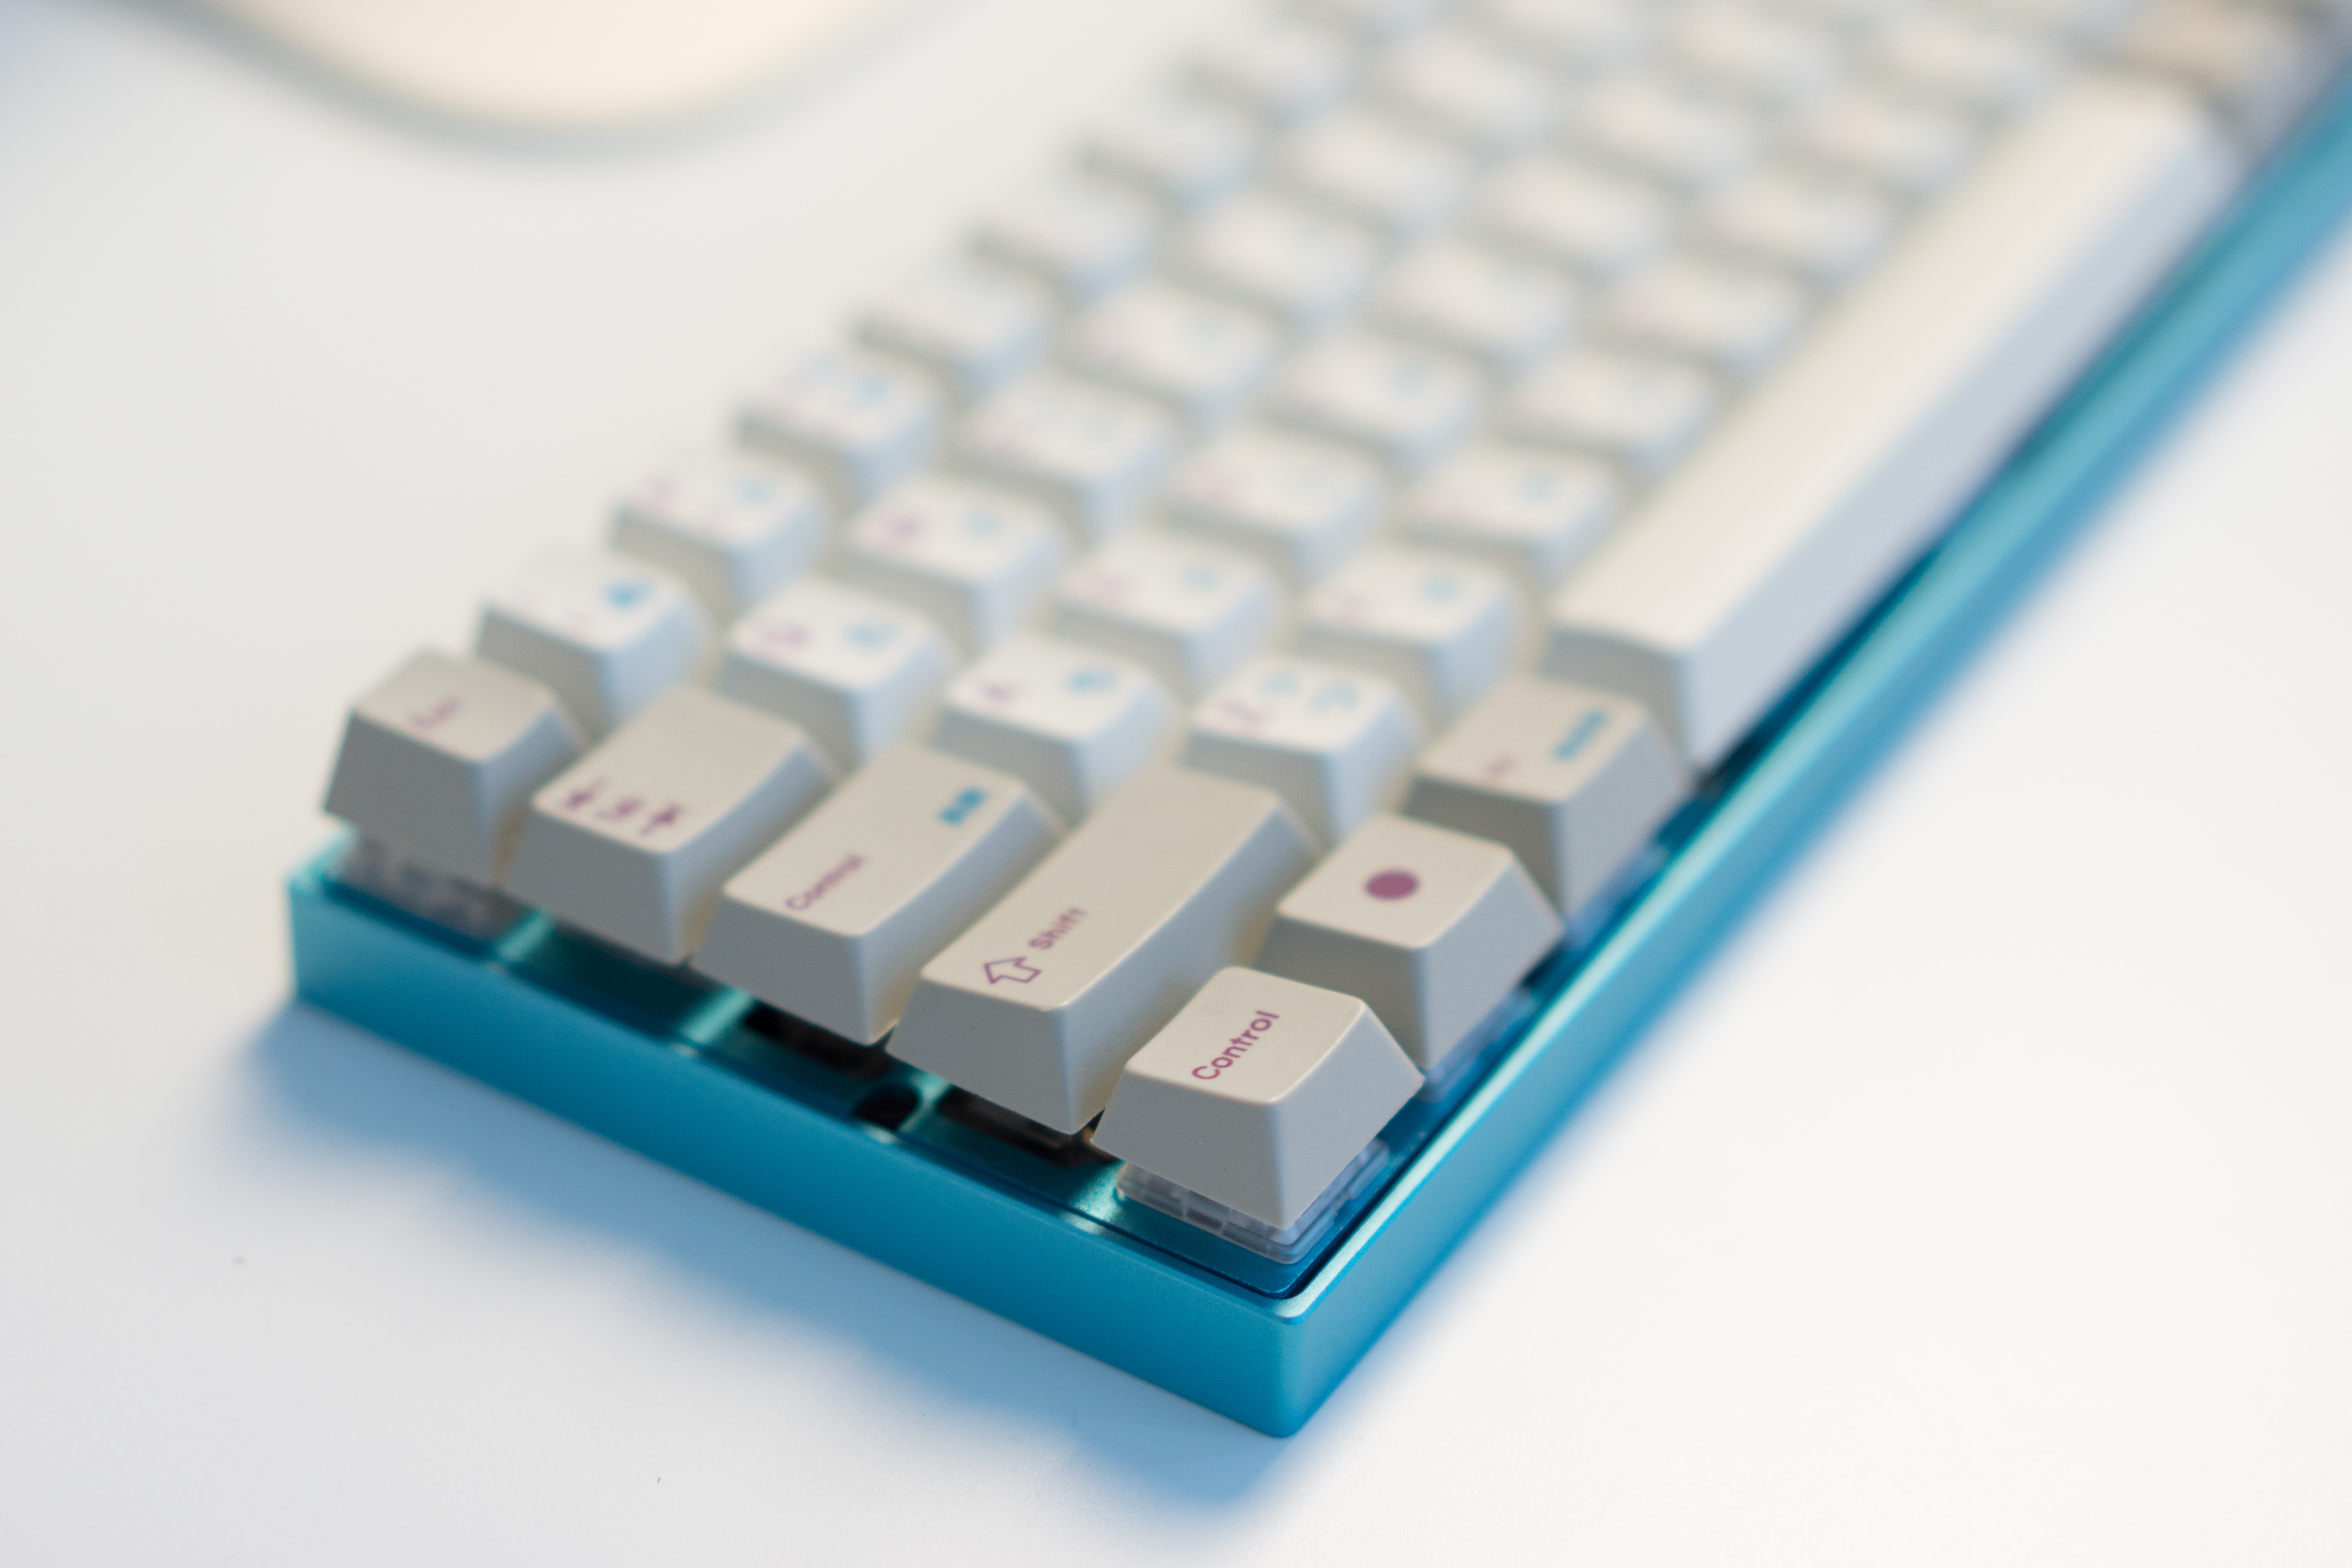 Custom keyboard with Zeal60, Zealiostotlespacers, Enjoy PBT Kana Keycaps, Sentraq Teal Plate and Case - Ryan MacLean